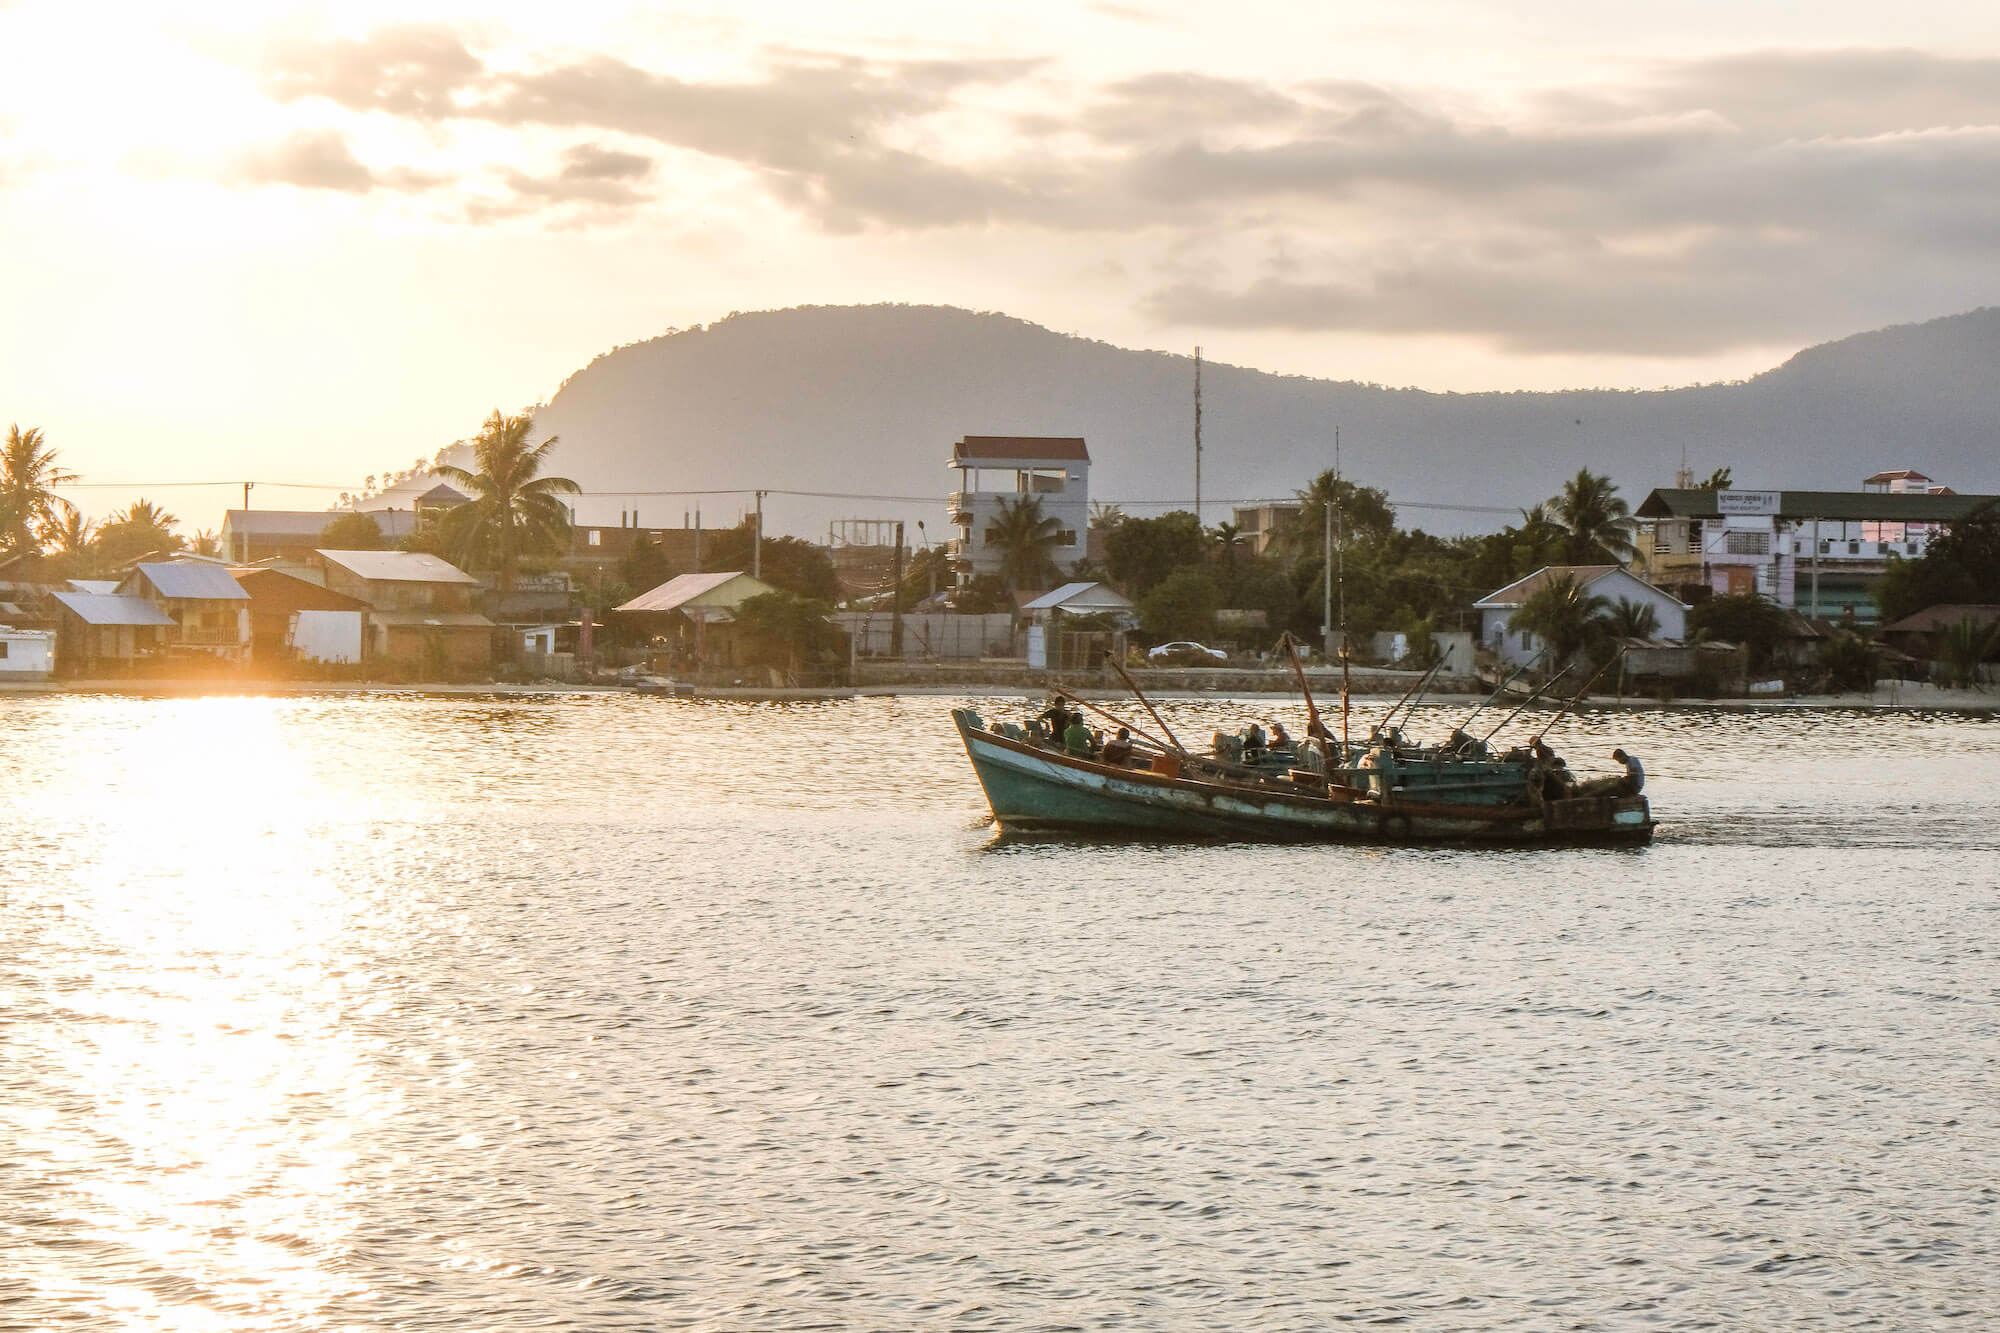 Sunset boat on river in Kampot